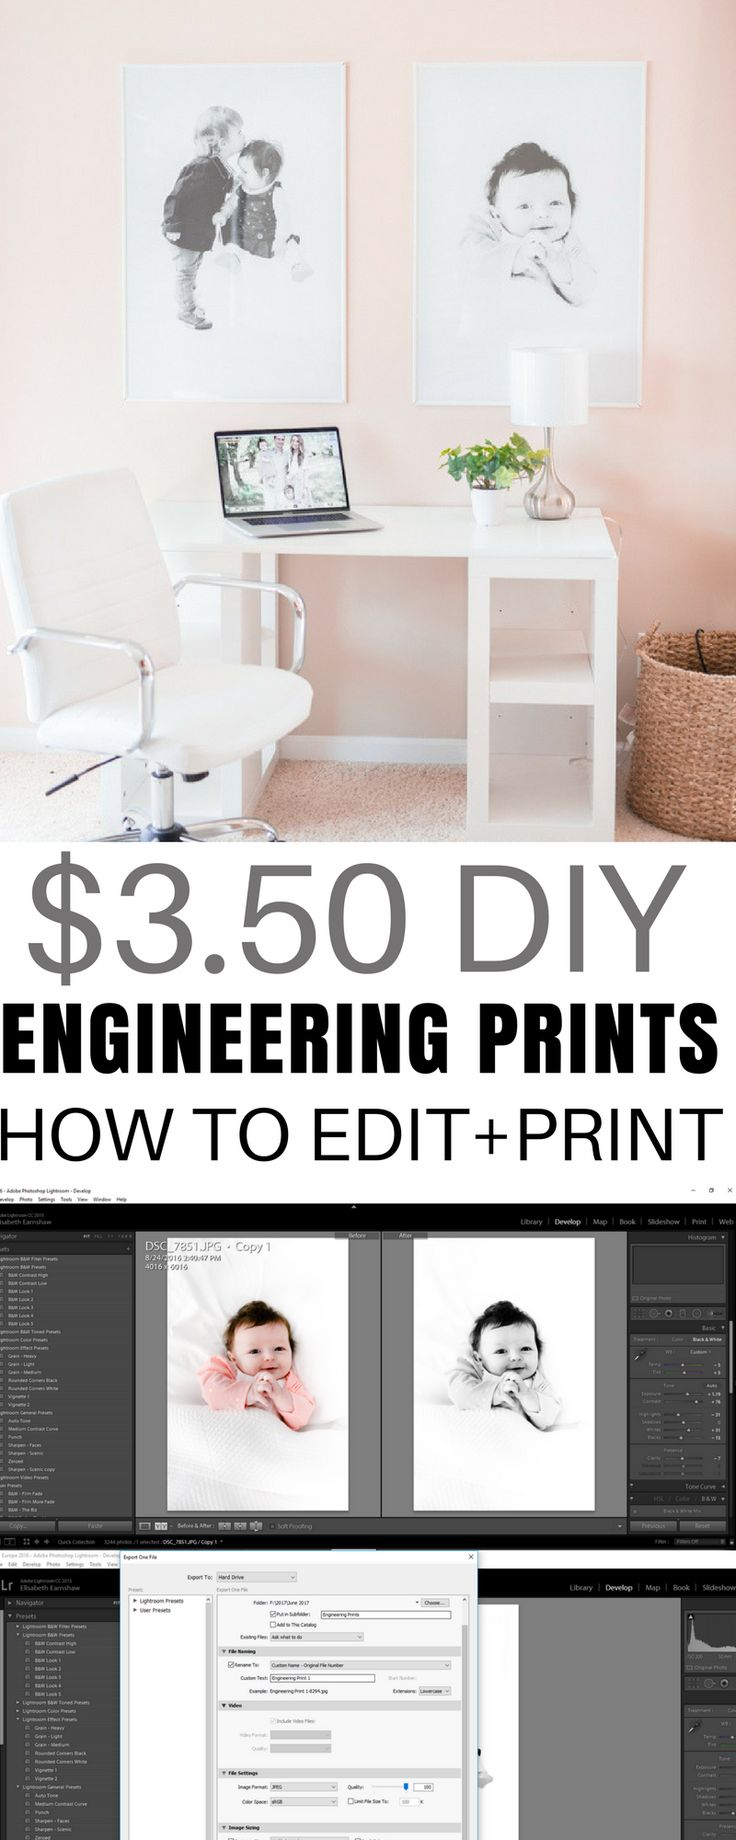 best 25 engineer prints ideas on pinterest staples engineer